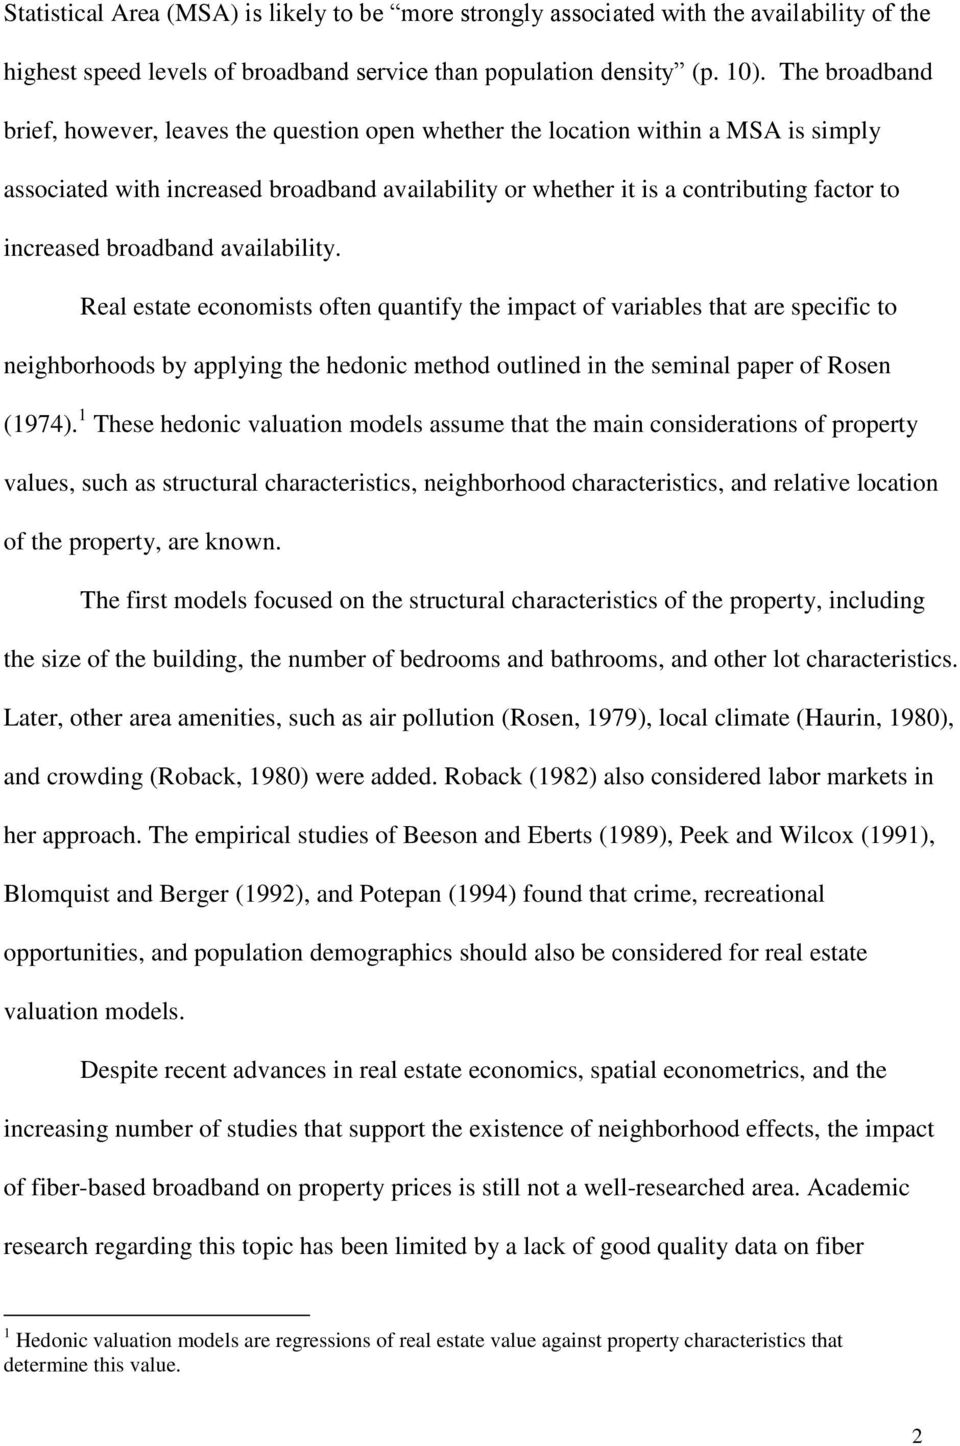 broadband availability. Real estate economists often quantify the impact of variables that are specific to neighborhoods by applying the hedonic method outlined in the seminal paper of Rosen (1974).